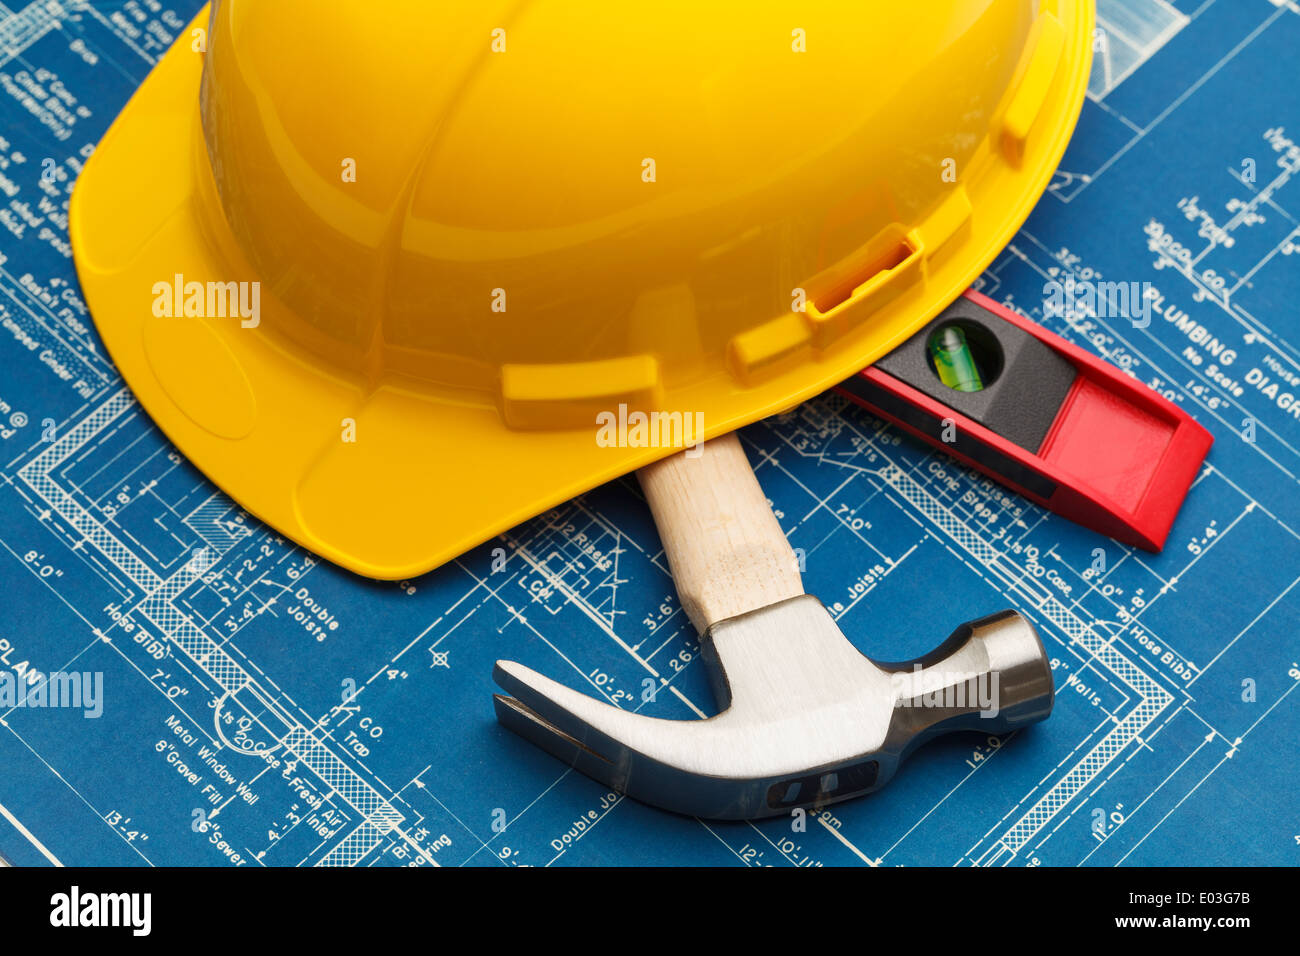 Construction blueprints and tools with hard hat stock photo construction blueprints and tools with hard hat malvernweather Image collections